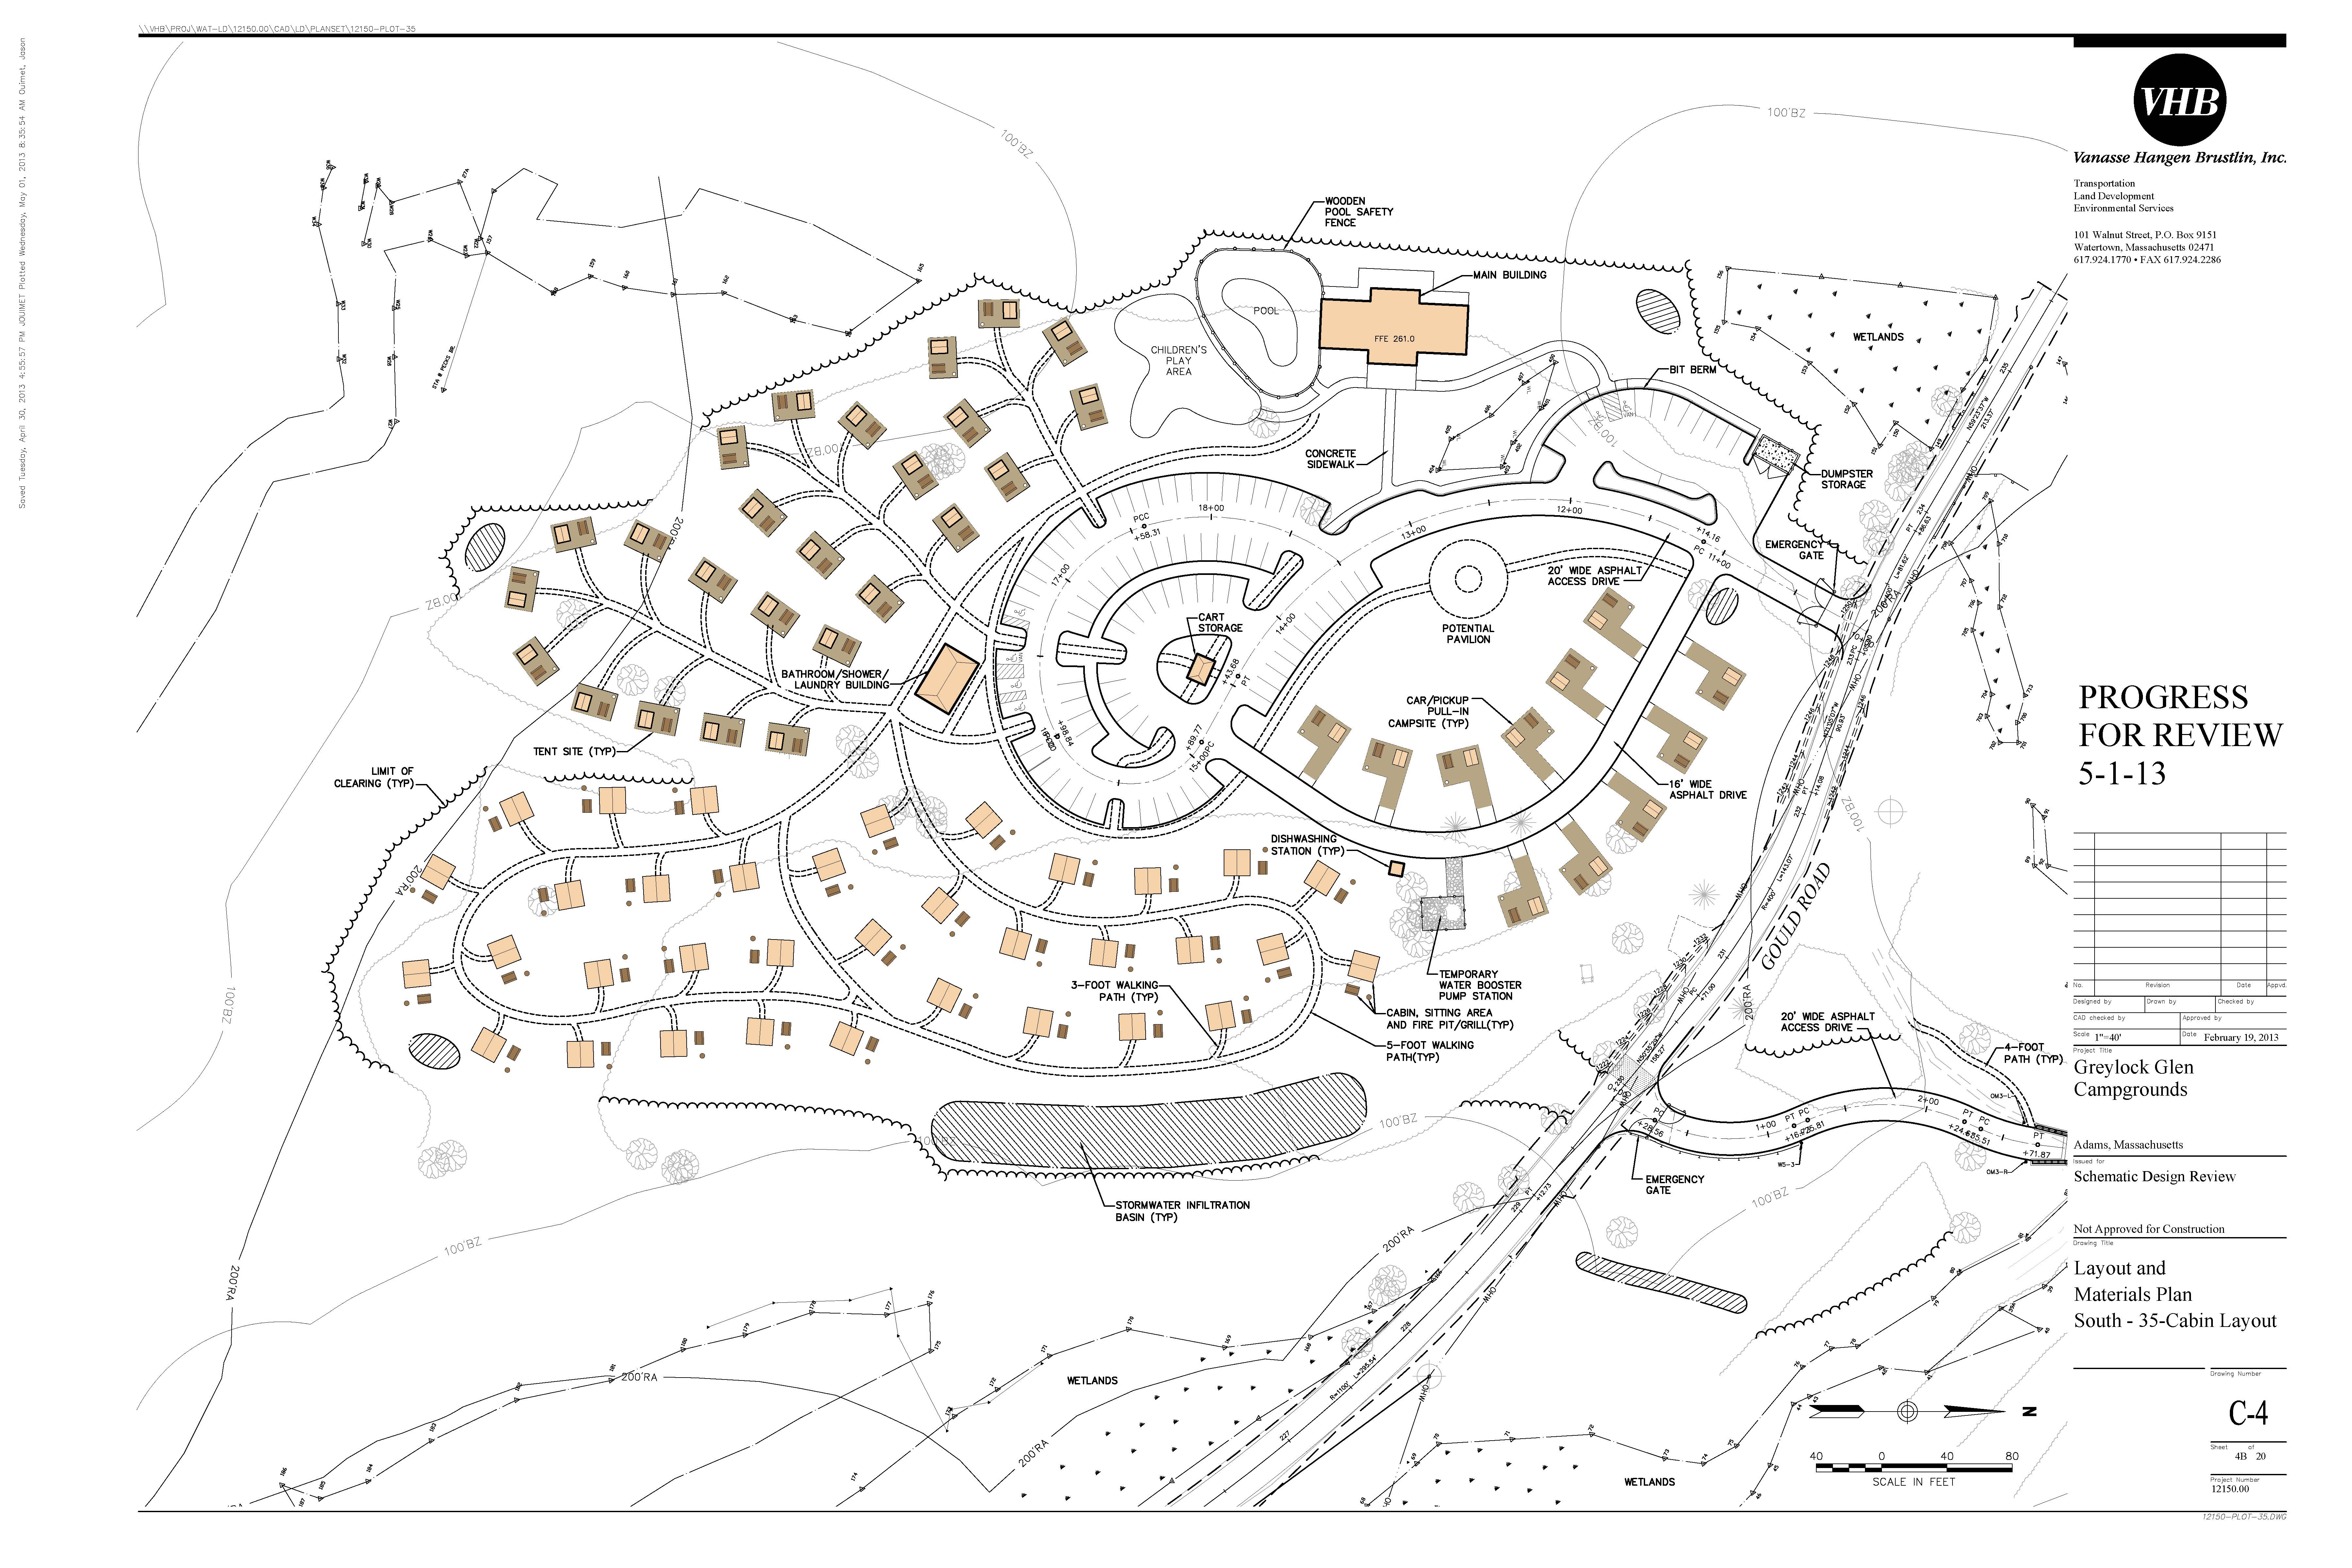 Private And Public Components Planned For Greylock Glen Resort